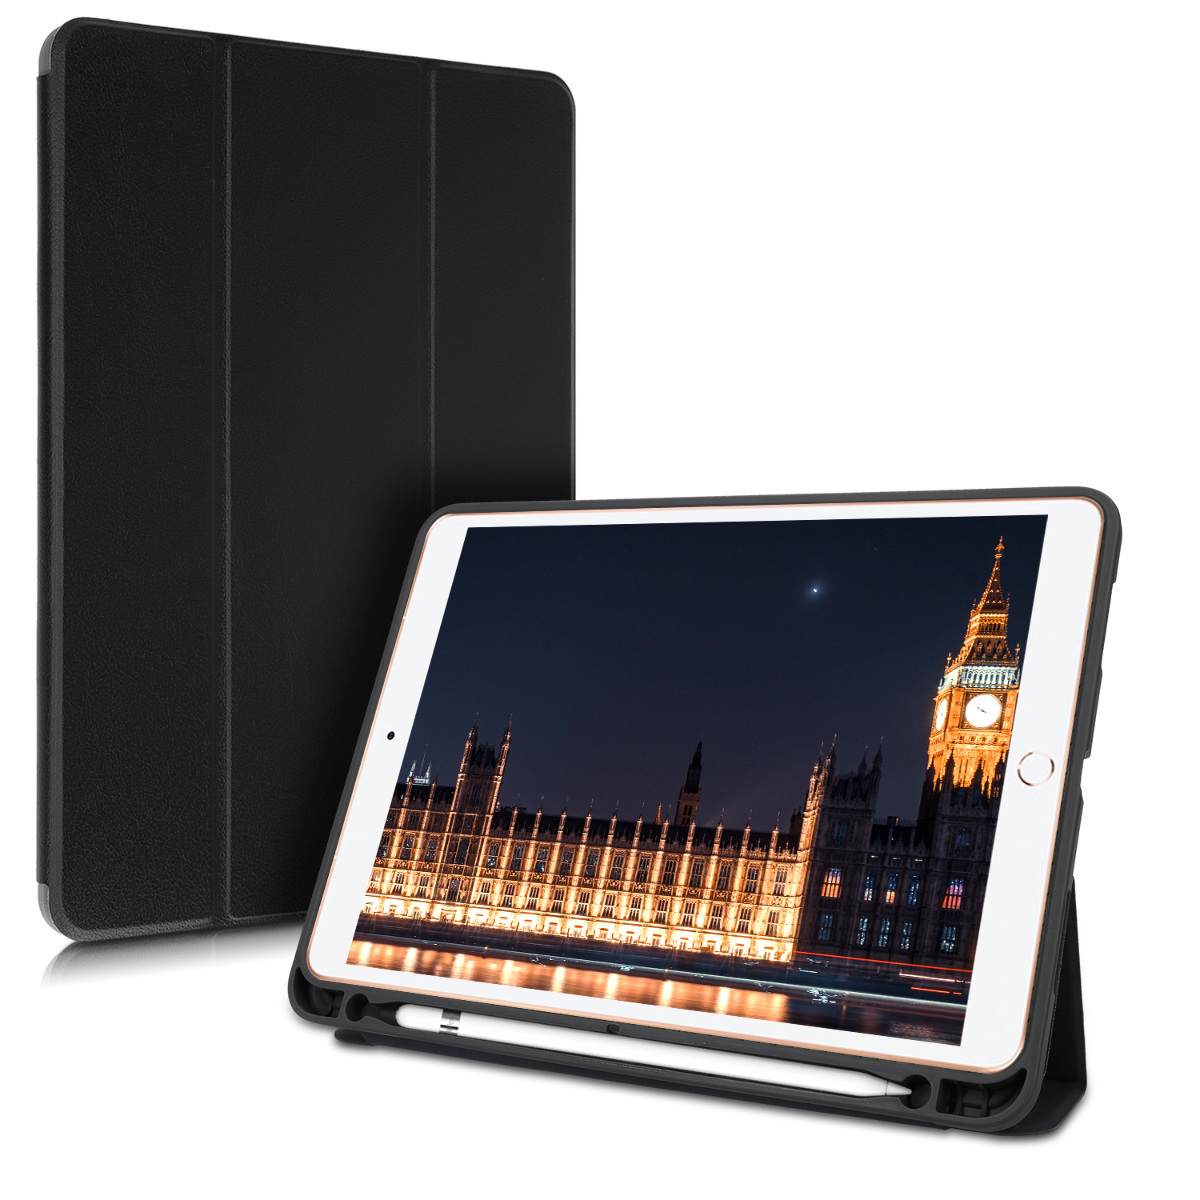 KW Θήκη Apple iPad Air 3 2019 - Smart Cover with Pen Holder - Black (48345.01)